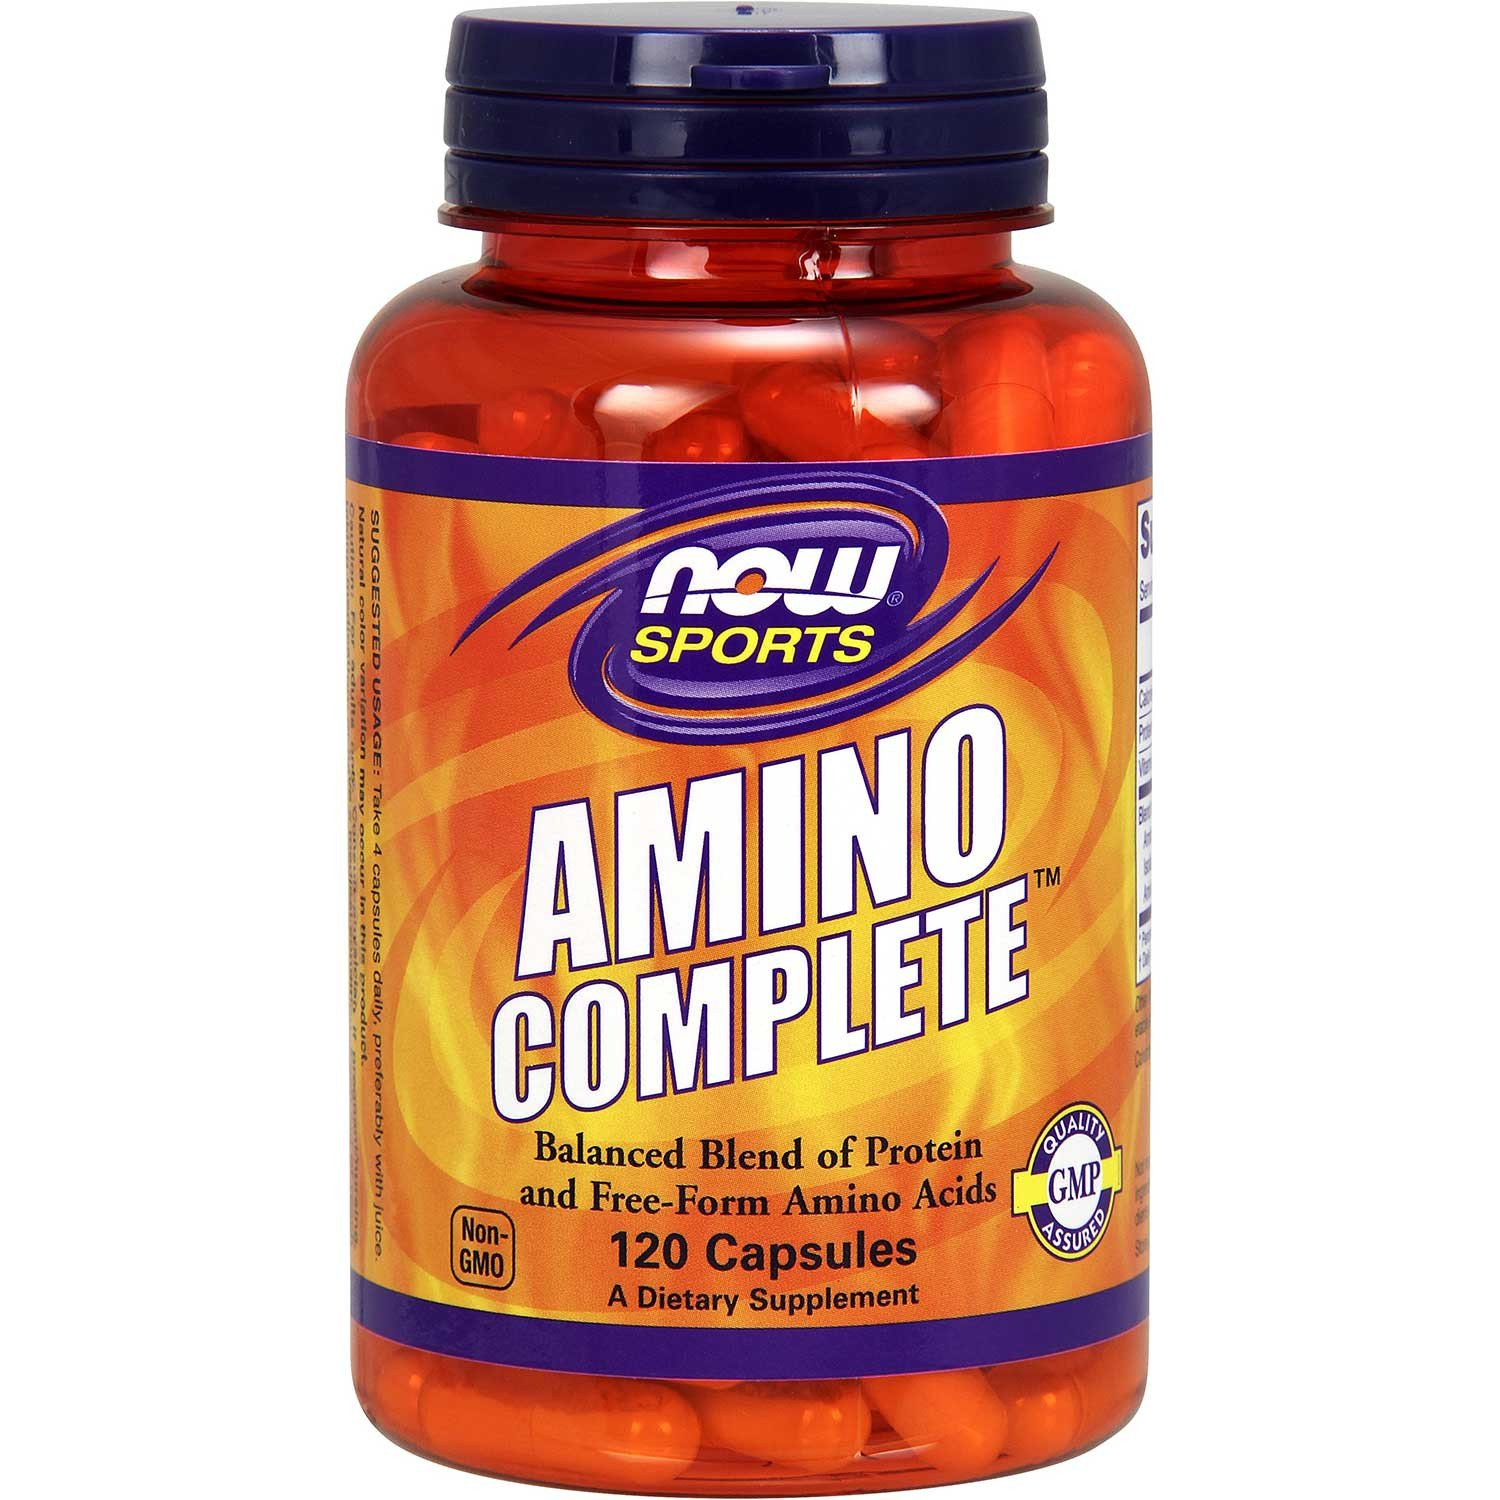 NOW Amino Complete Balanced Blends of Amino Acids, 120 caps